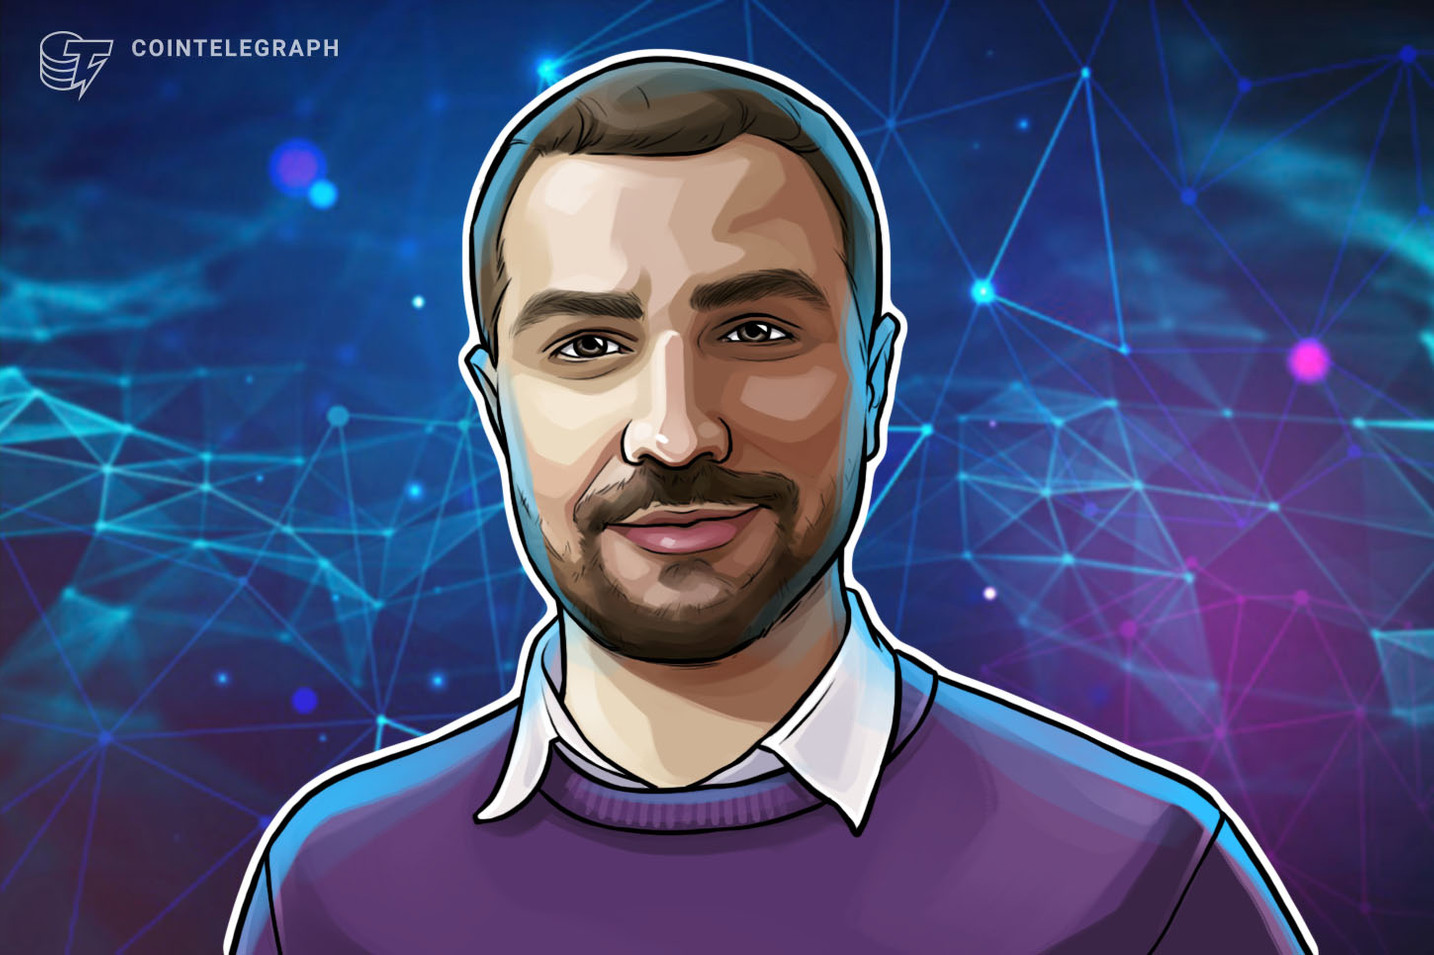 Smart Contracts Is Too Limiting a Name, Says Blockstack CEO